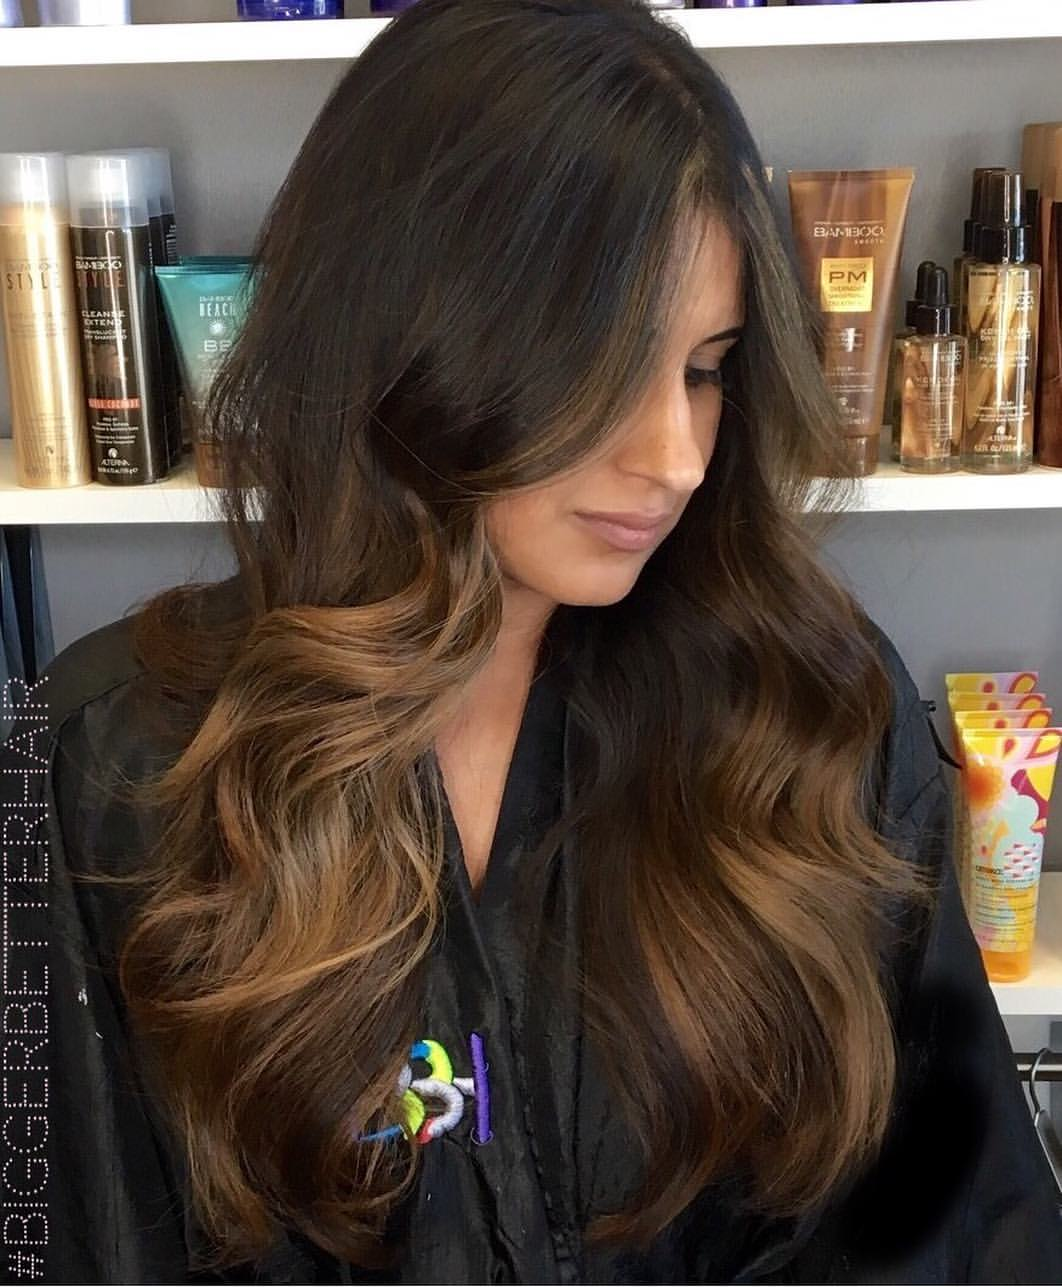 Balayage highlights dallas hair color 101 soft balayage highlights around her root area heavier near her ends end result a brightened overall look that will grow out easily pmusecretfo Image collections